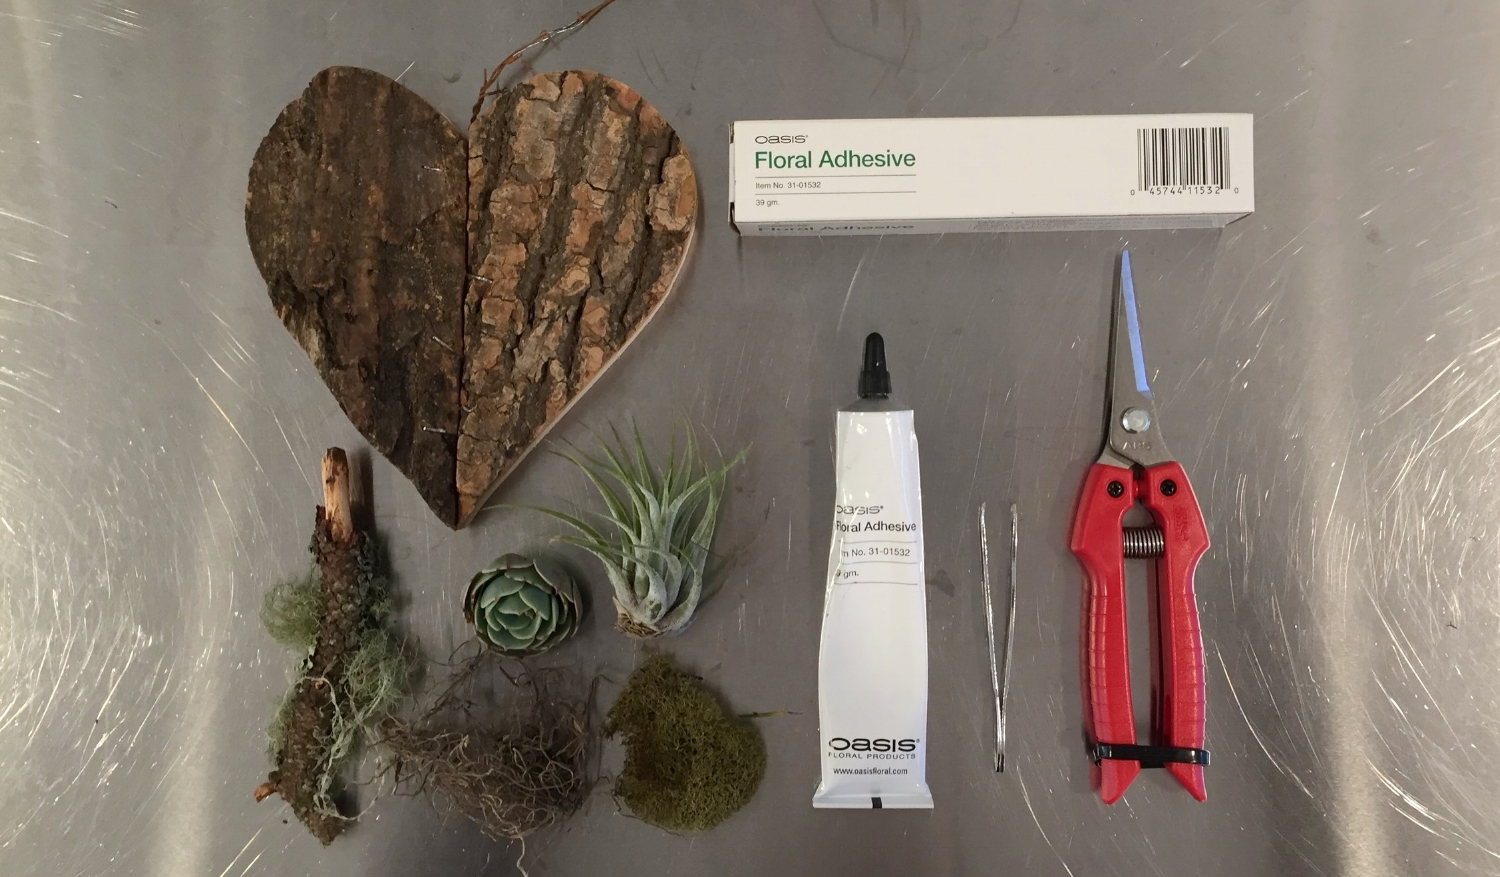 - You can find Oasis floral adhesive online. It allows moist things like live flowers and succulents to stick.  Collect some natural materials to collage onto a rigid base.